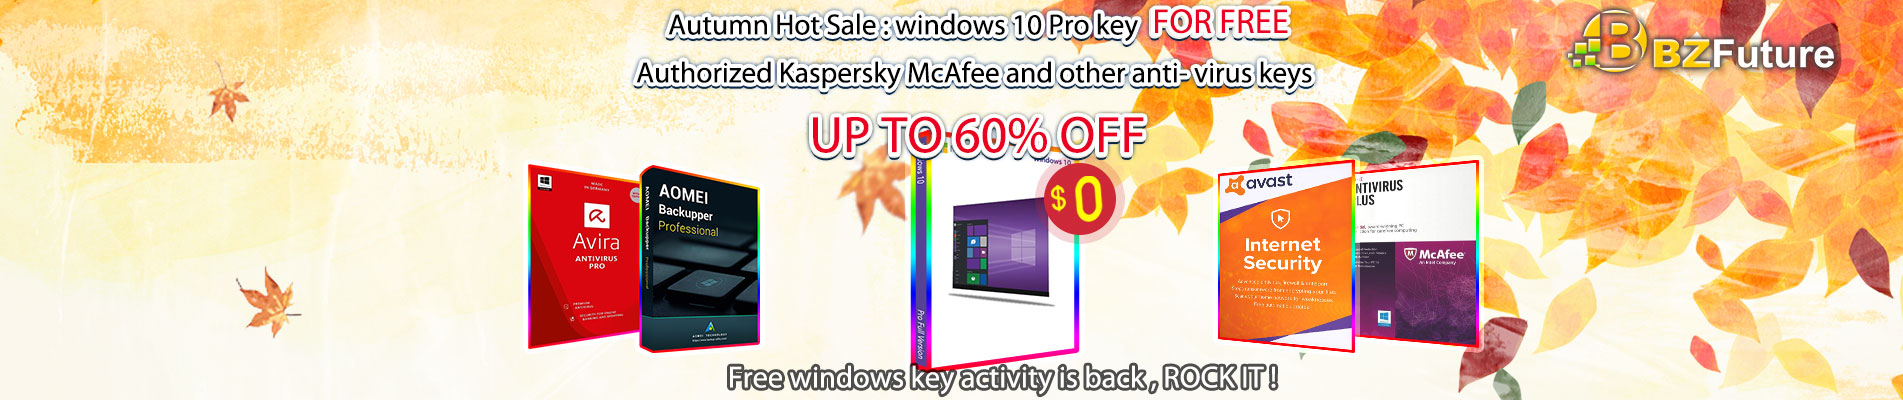 Autumn hot sale